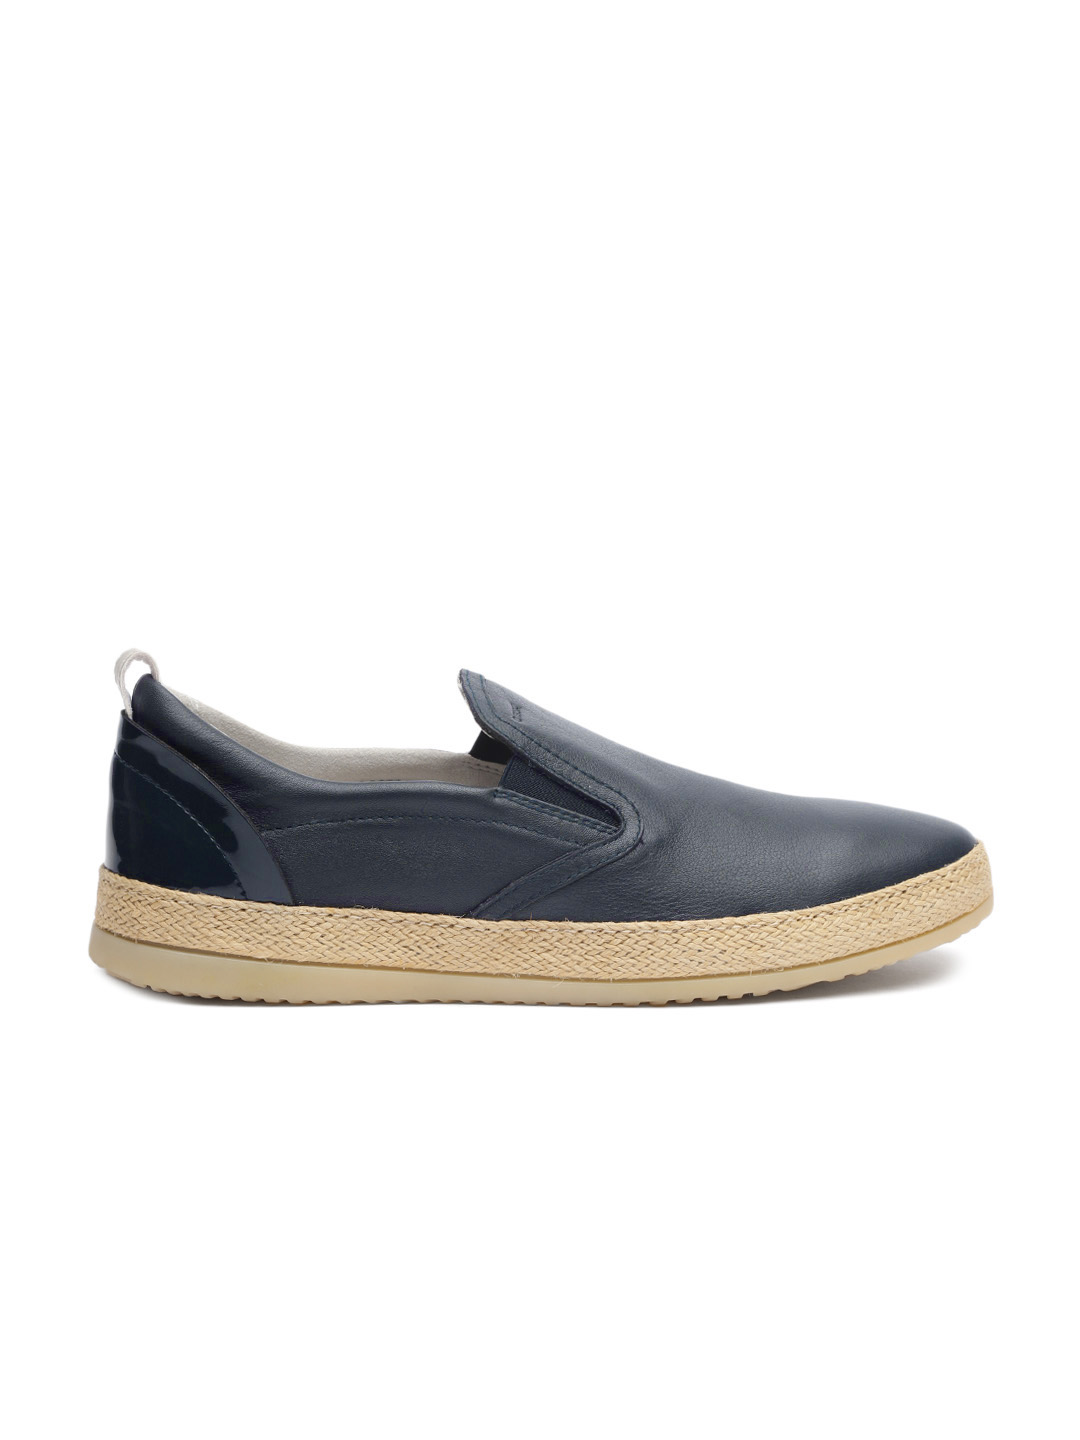 Geox Women Navy Blue Leather Slip-On Sneakers Price in India